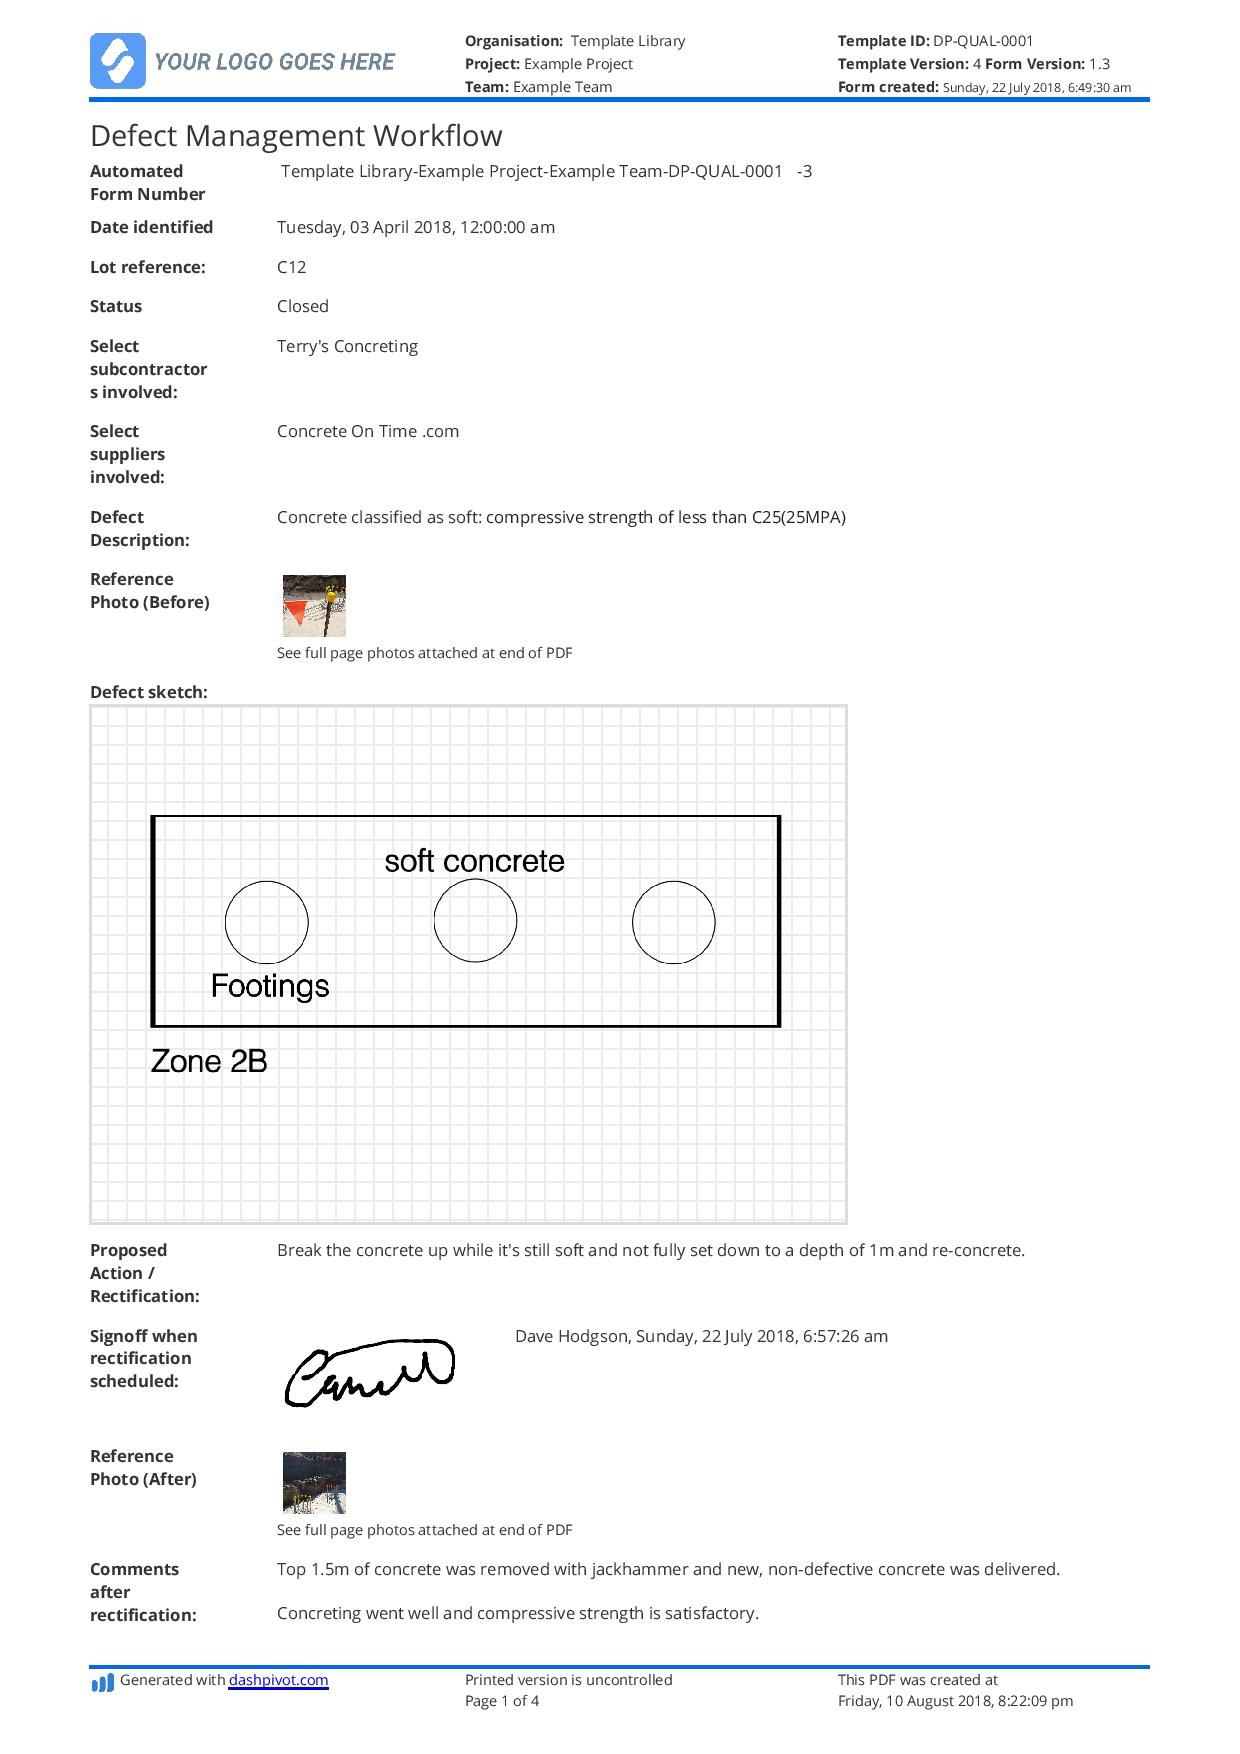 Free Defect Report Template Better Than Word Doc And Excel Regarding Fault Report Template Word